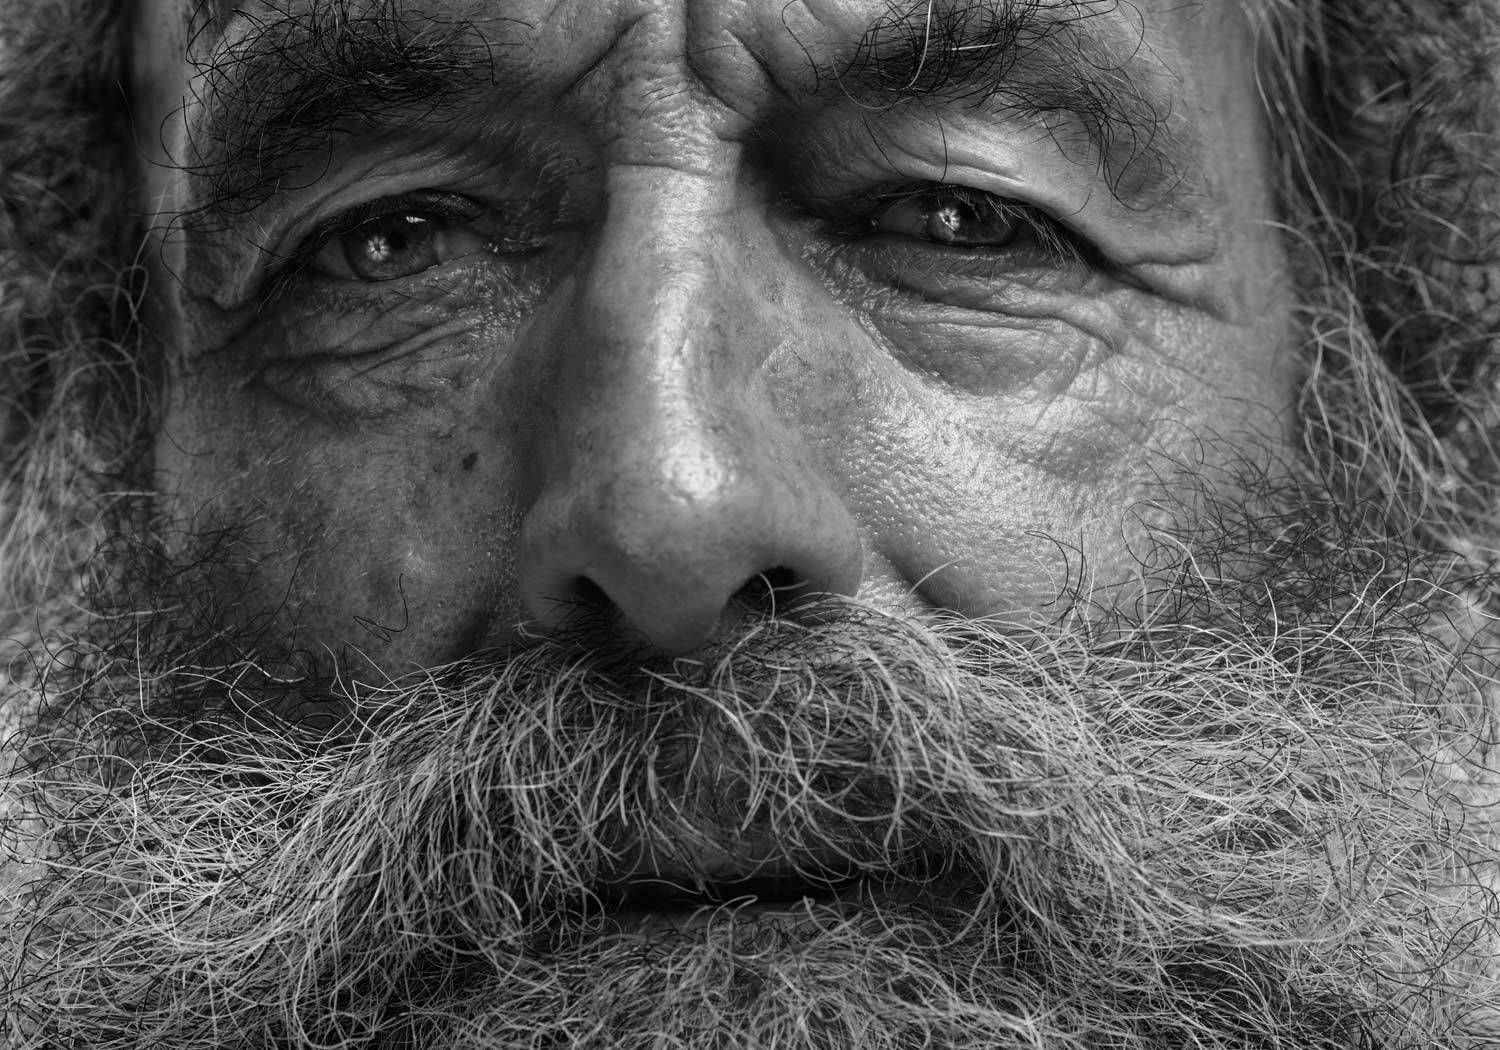 ALPINE BEARDS - PORTRAIT SERIES